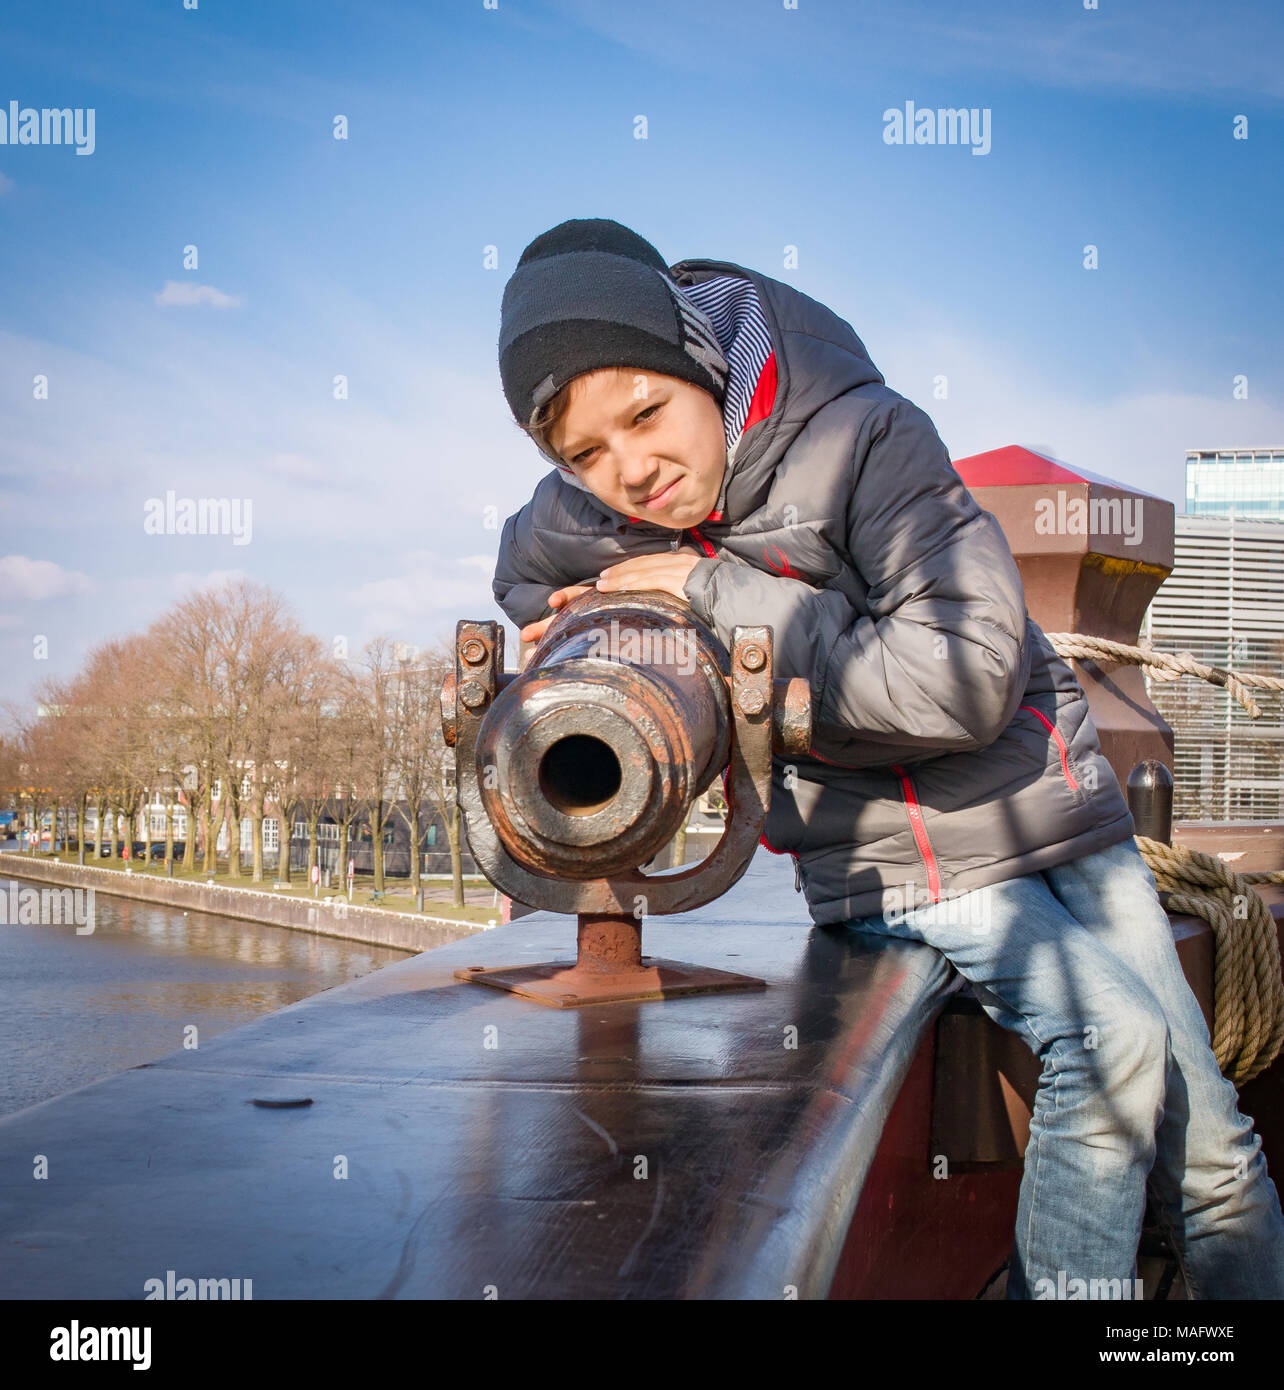 Boy aiming a canon at a target, on an old sailing ship, Amsterdam, Holland. Vintage vessel. - Stock Image